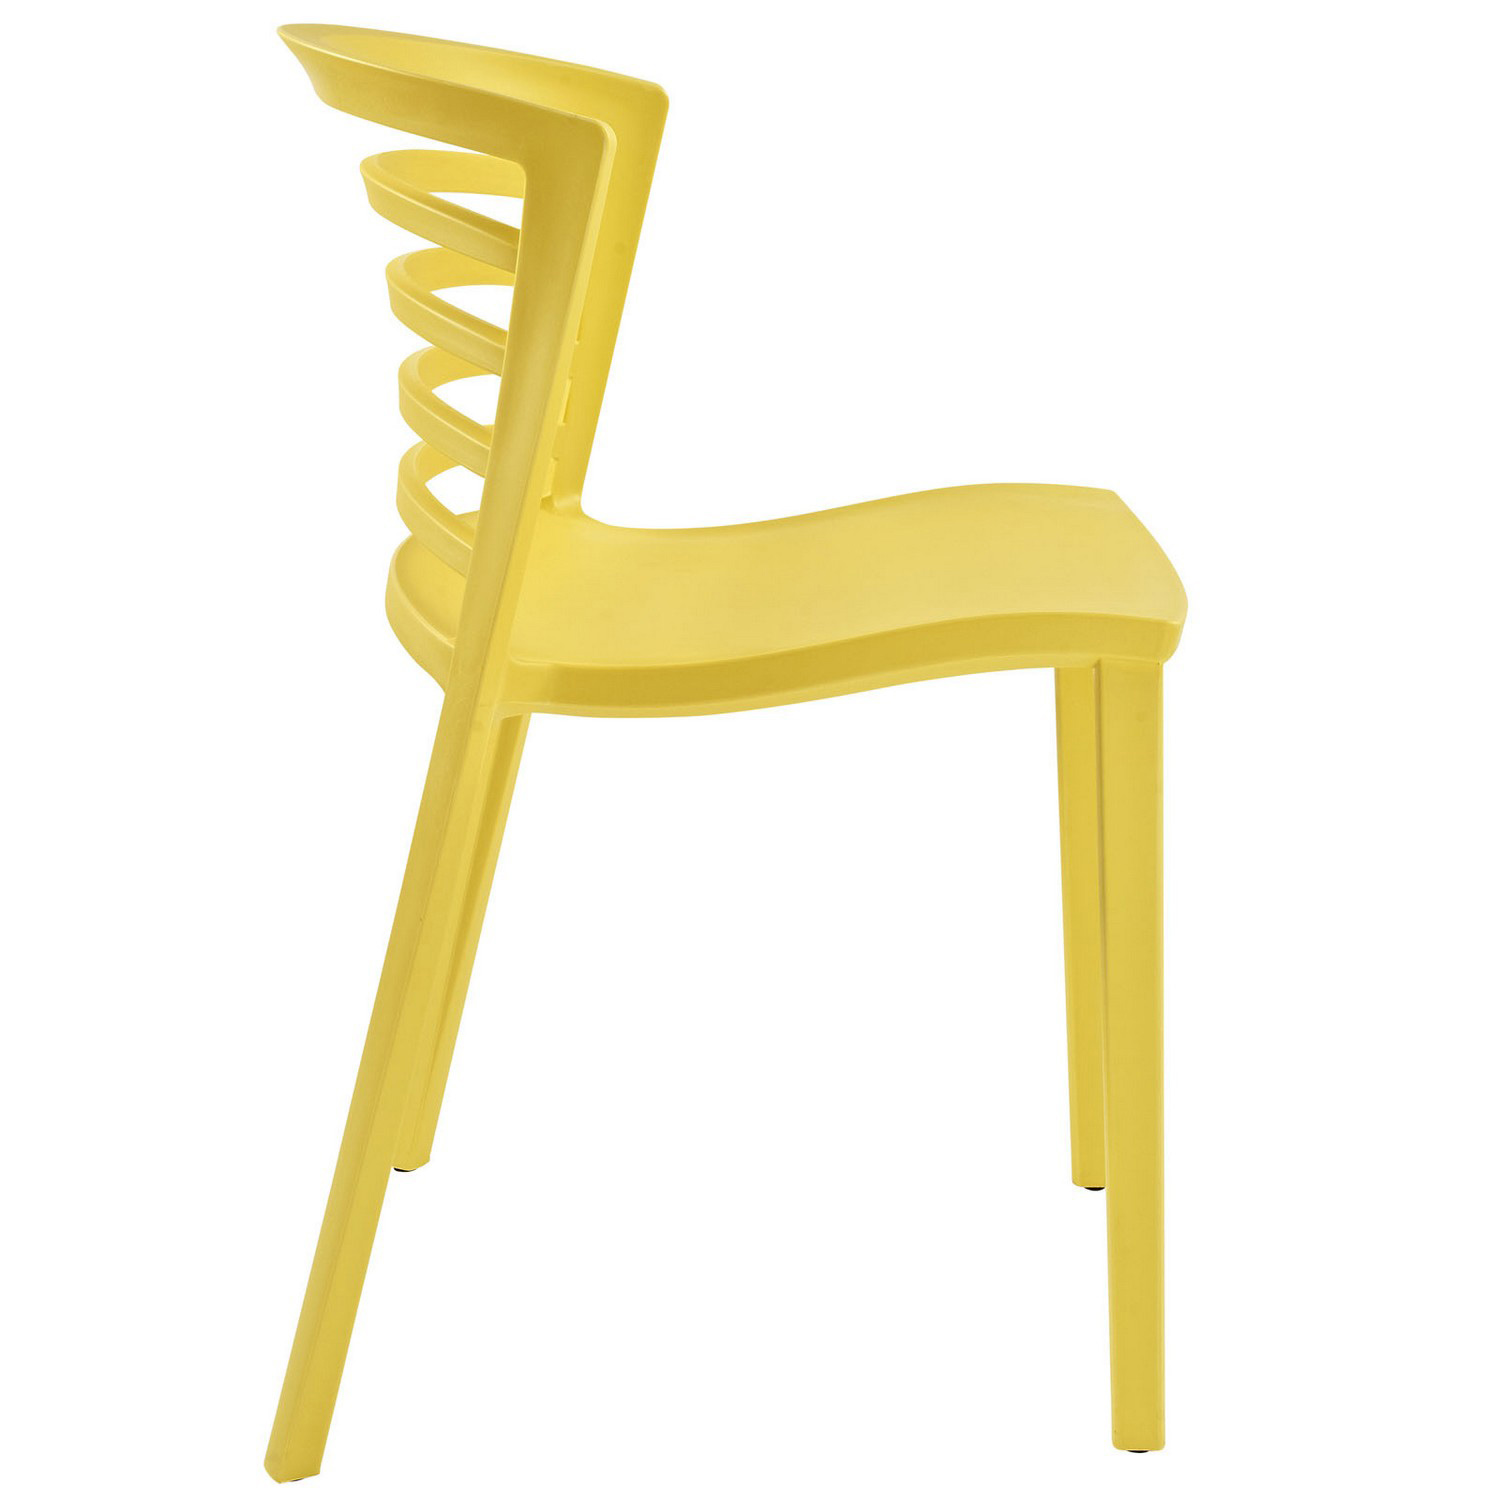 Modway Curvy 4PC Dining Chairs Set - Yellow